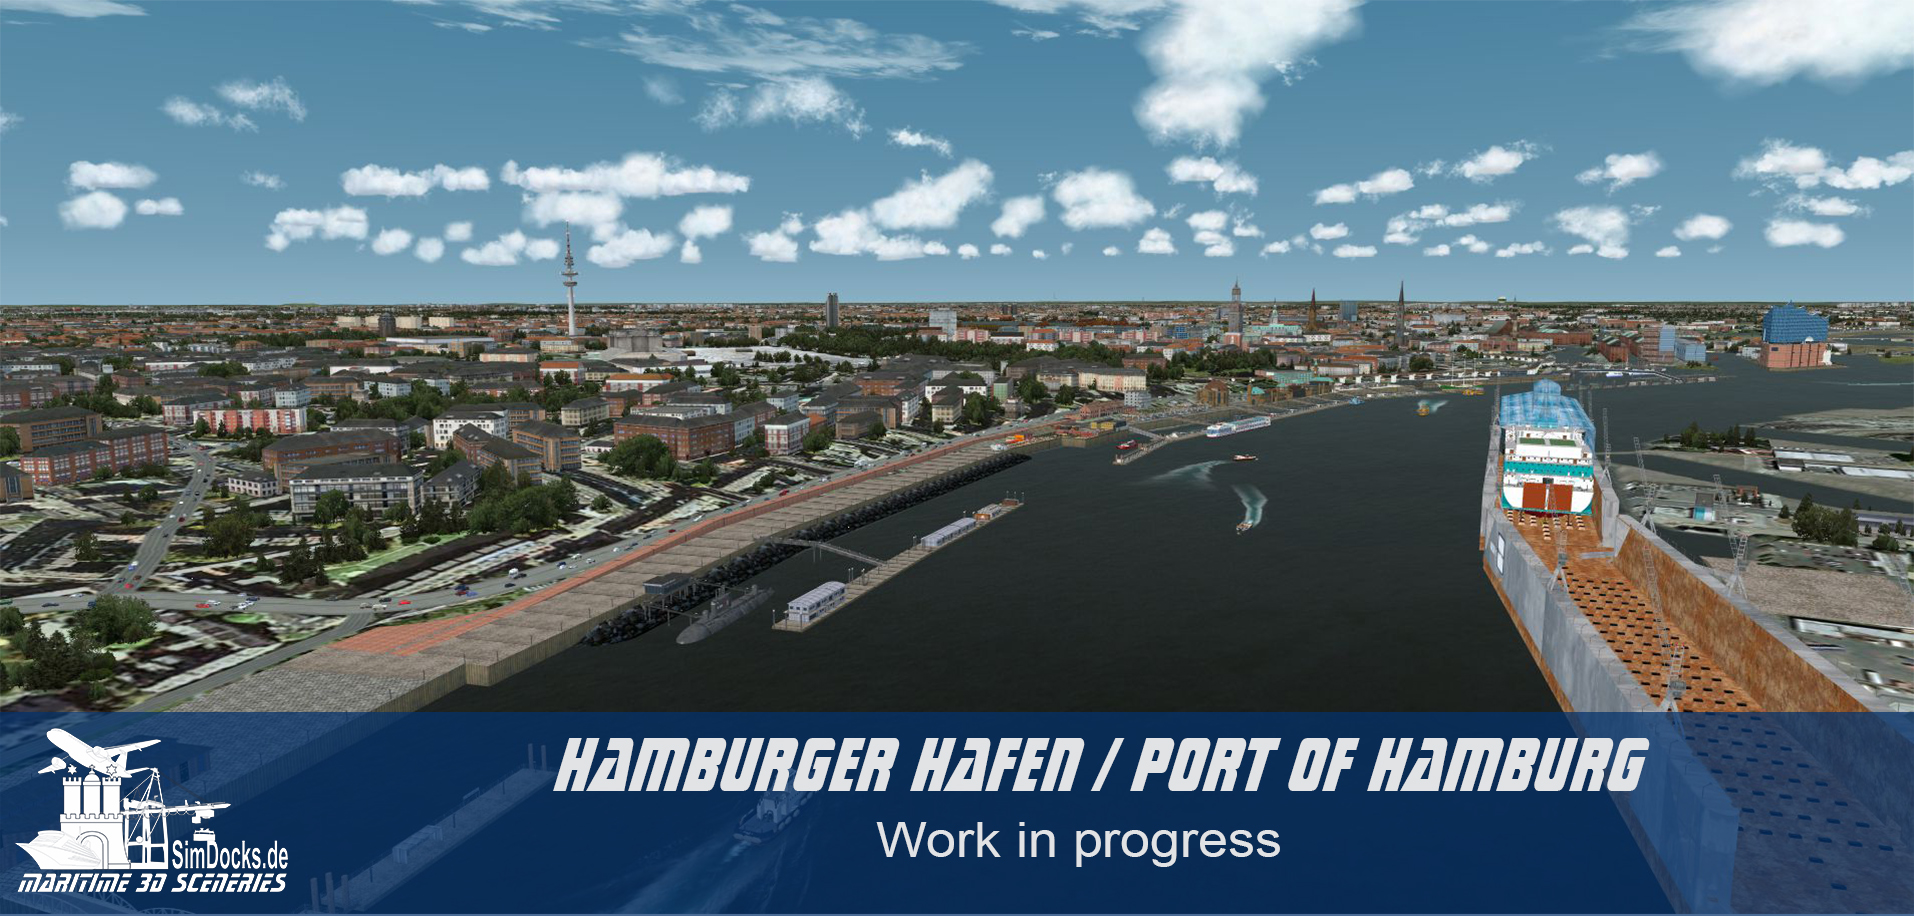 HH-Port_bau49_tag.JPG